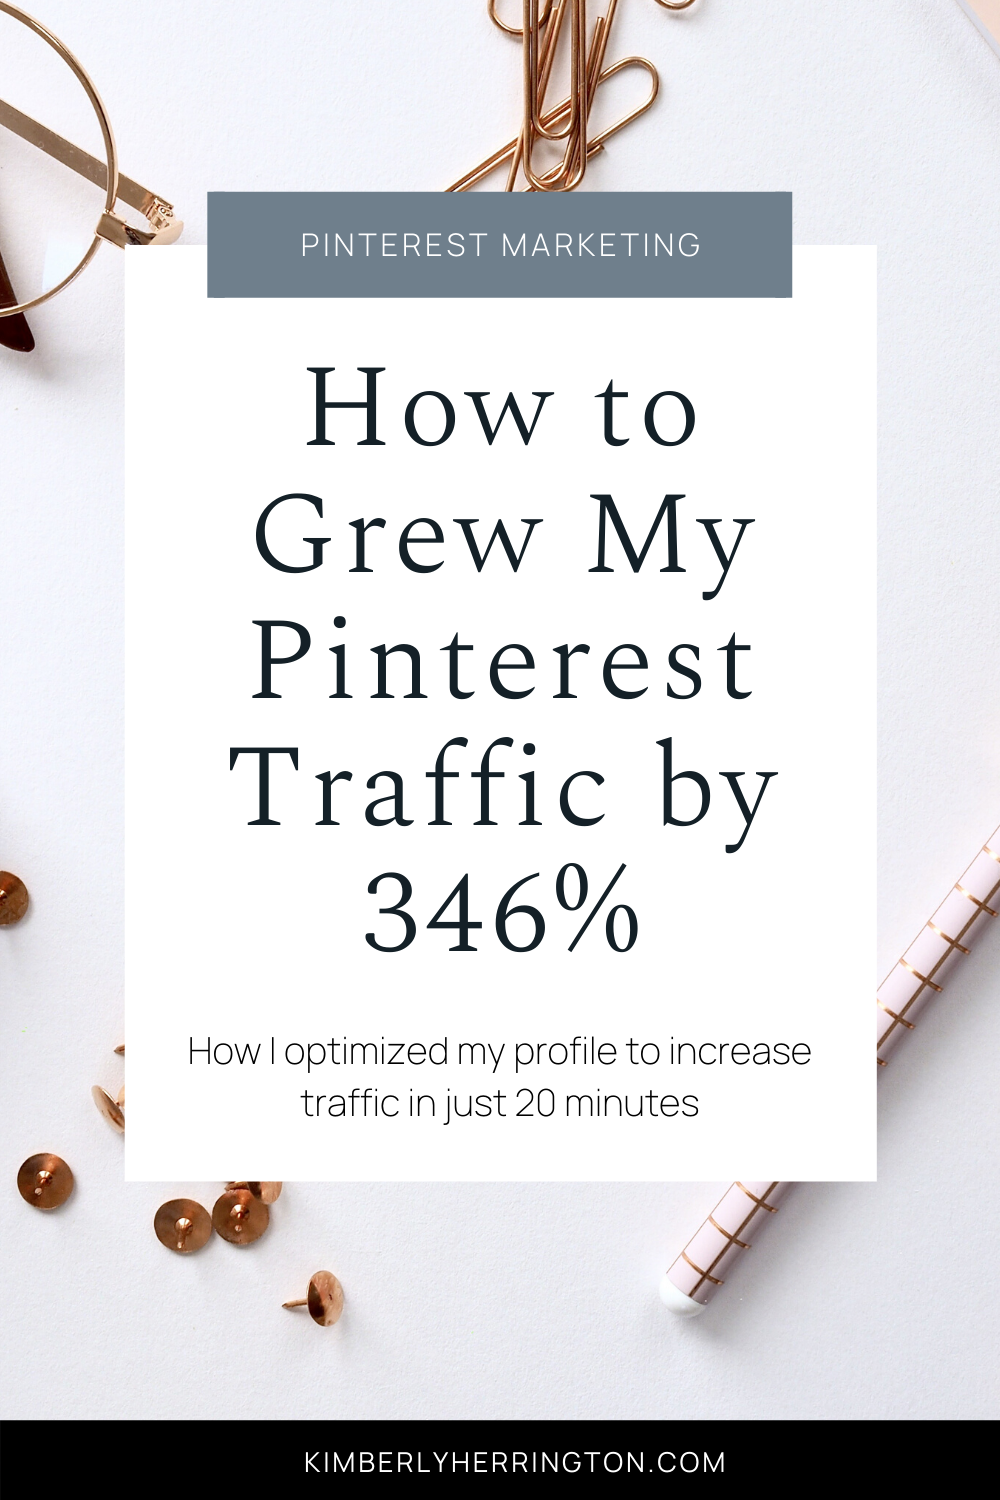 Pinterest Profile Optimization: How I got 346% More Traffic from Pinterest